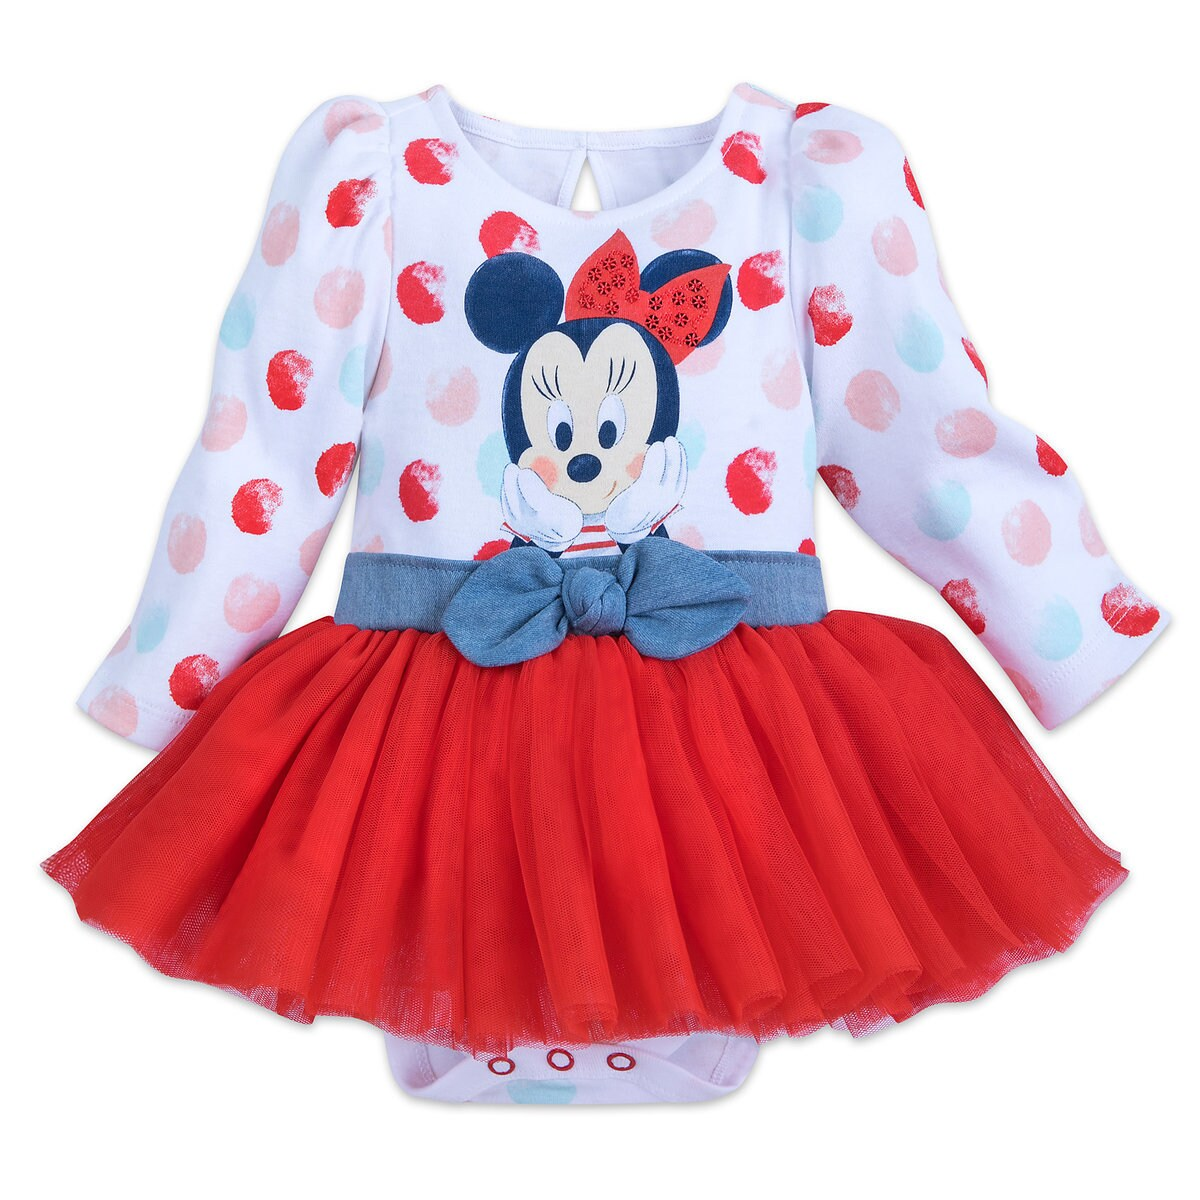 19d103d971 Product Image of Minnie Mouse Tutu Bodysuit for Baby # 1